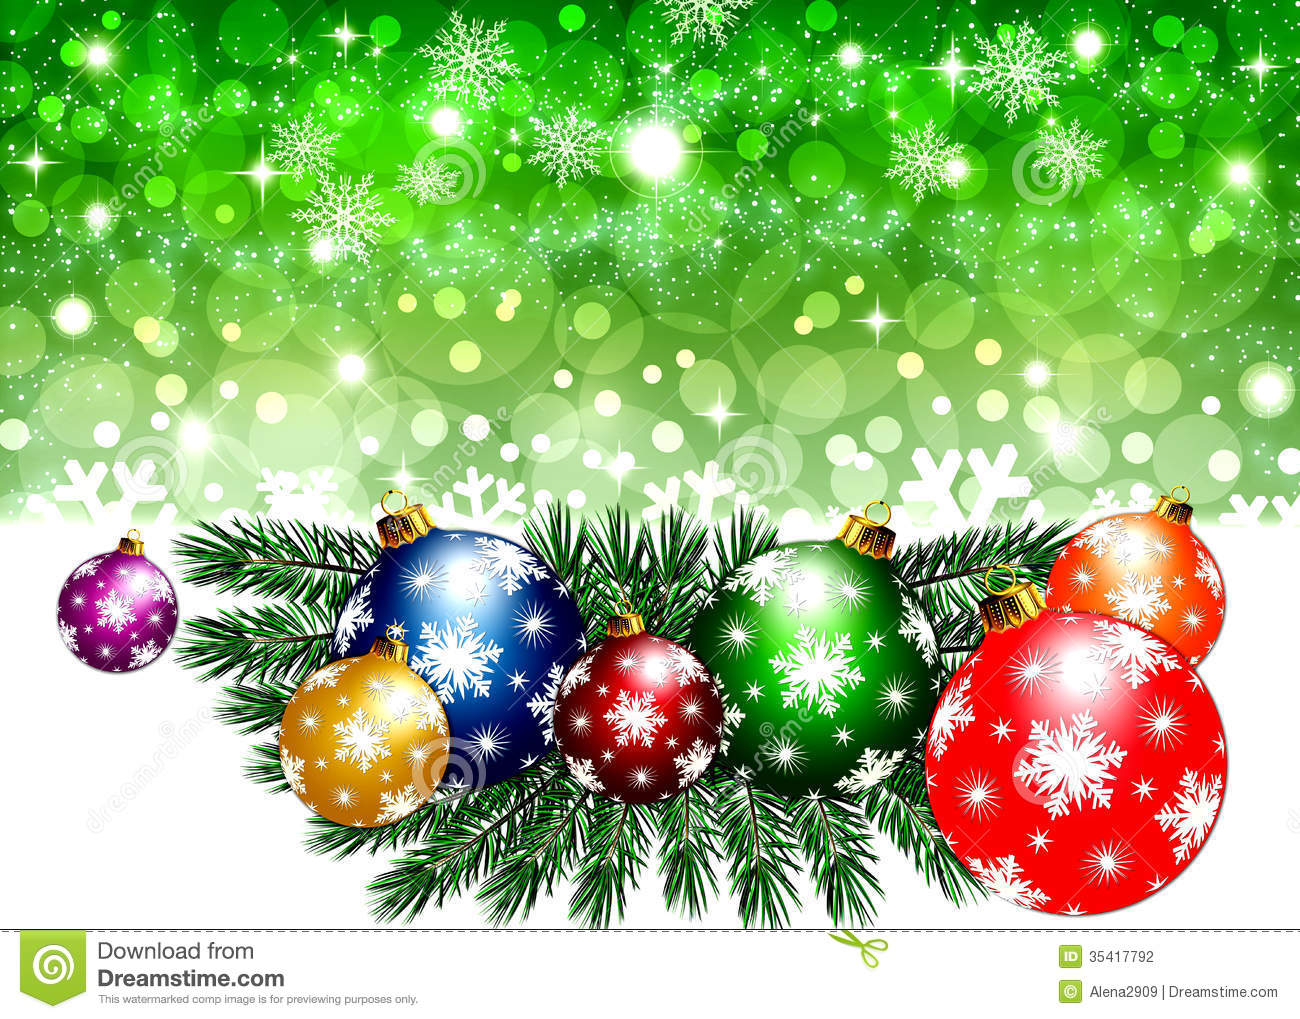 Christmas Backgrounds - Illustration Stock Illustration ...